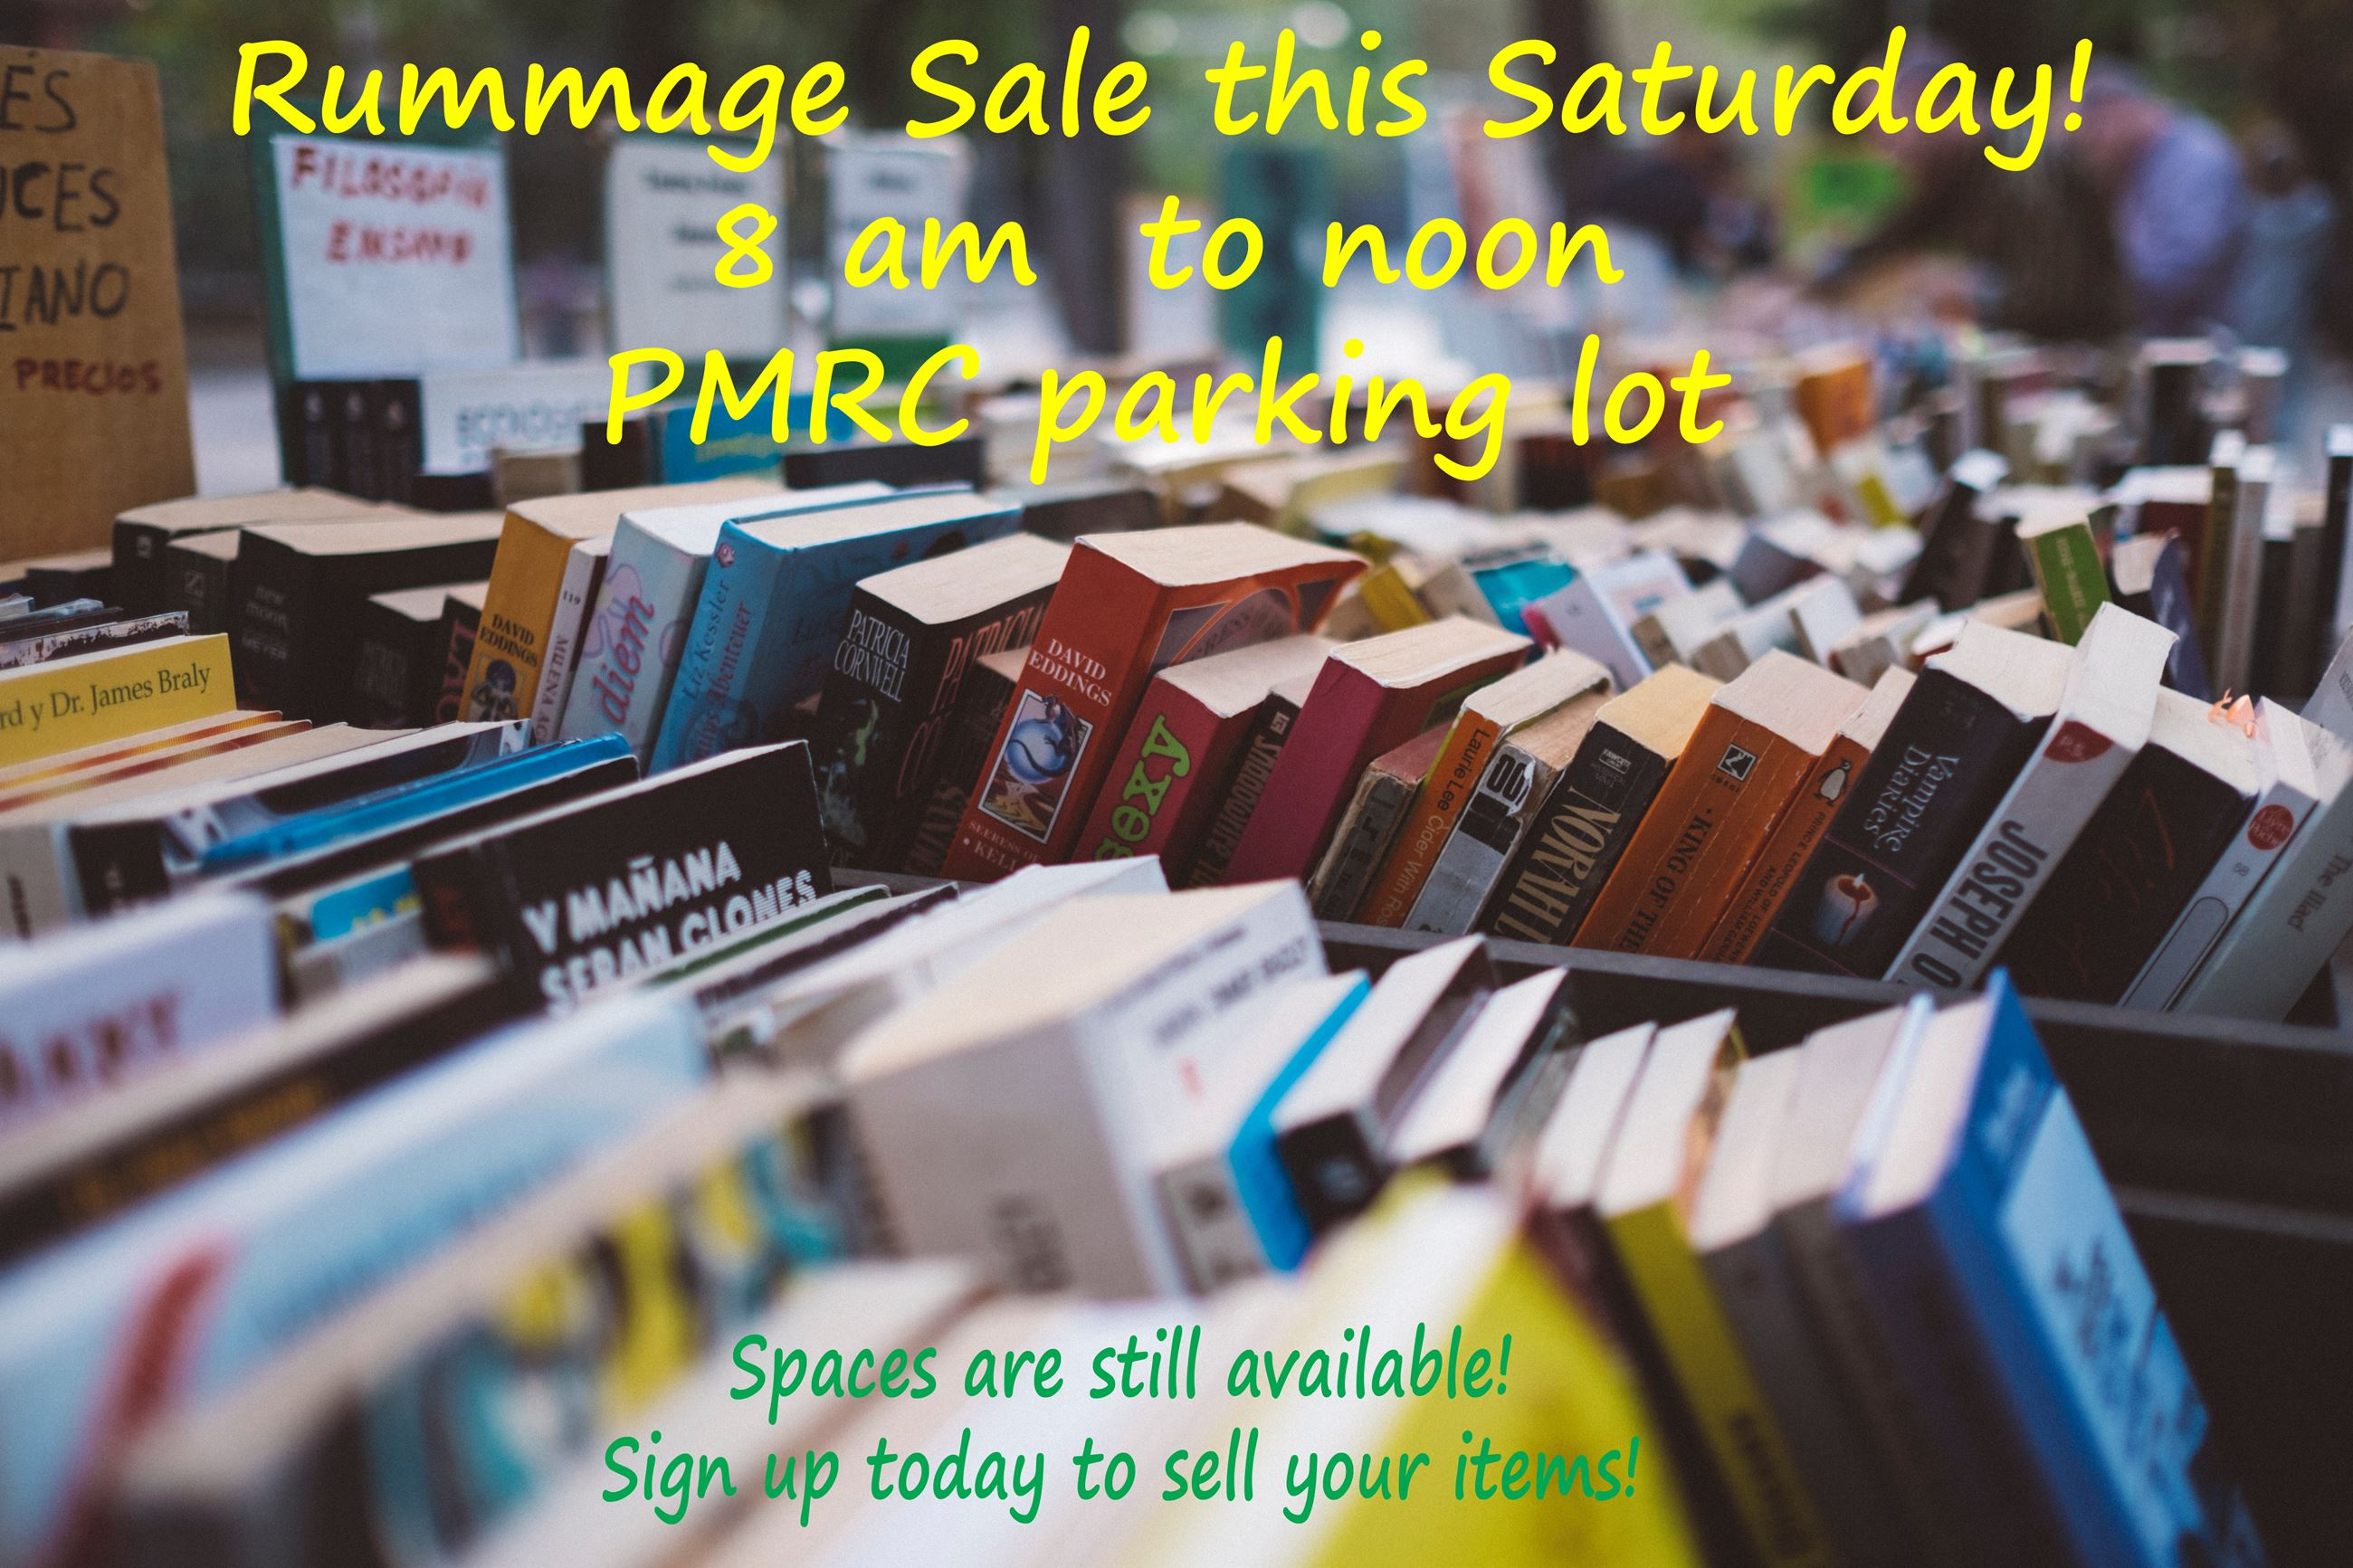 Rummage Sale this Saturday picture for social media